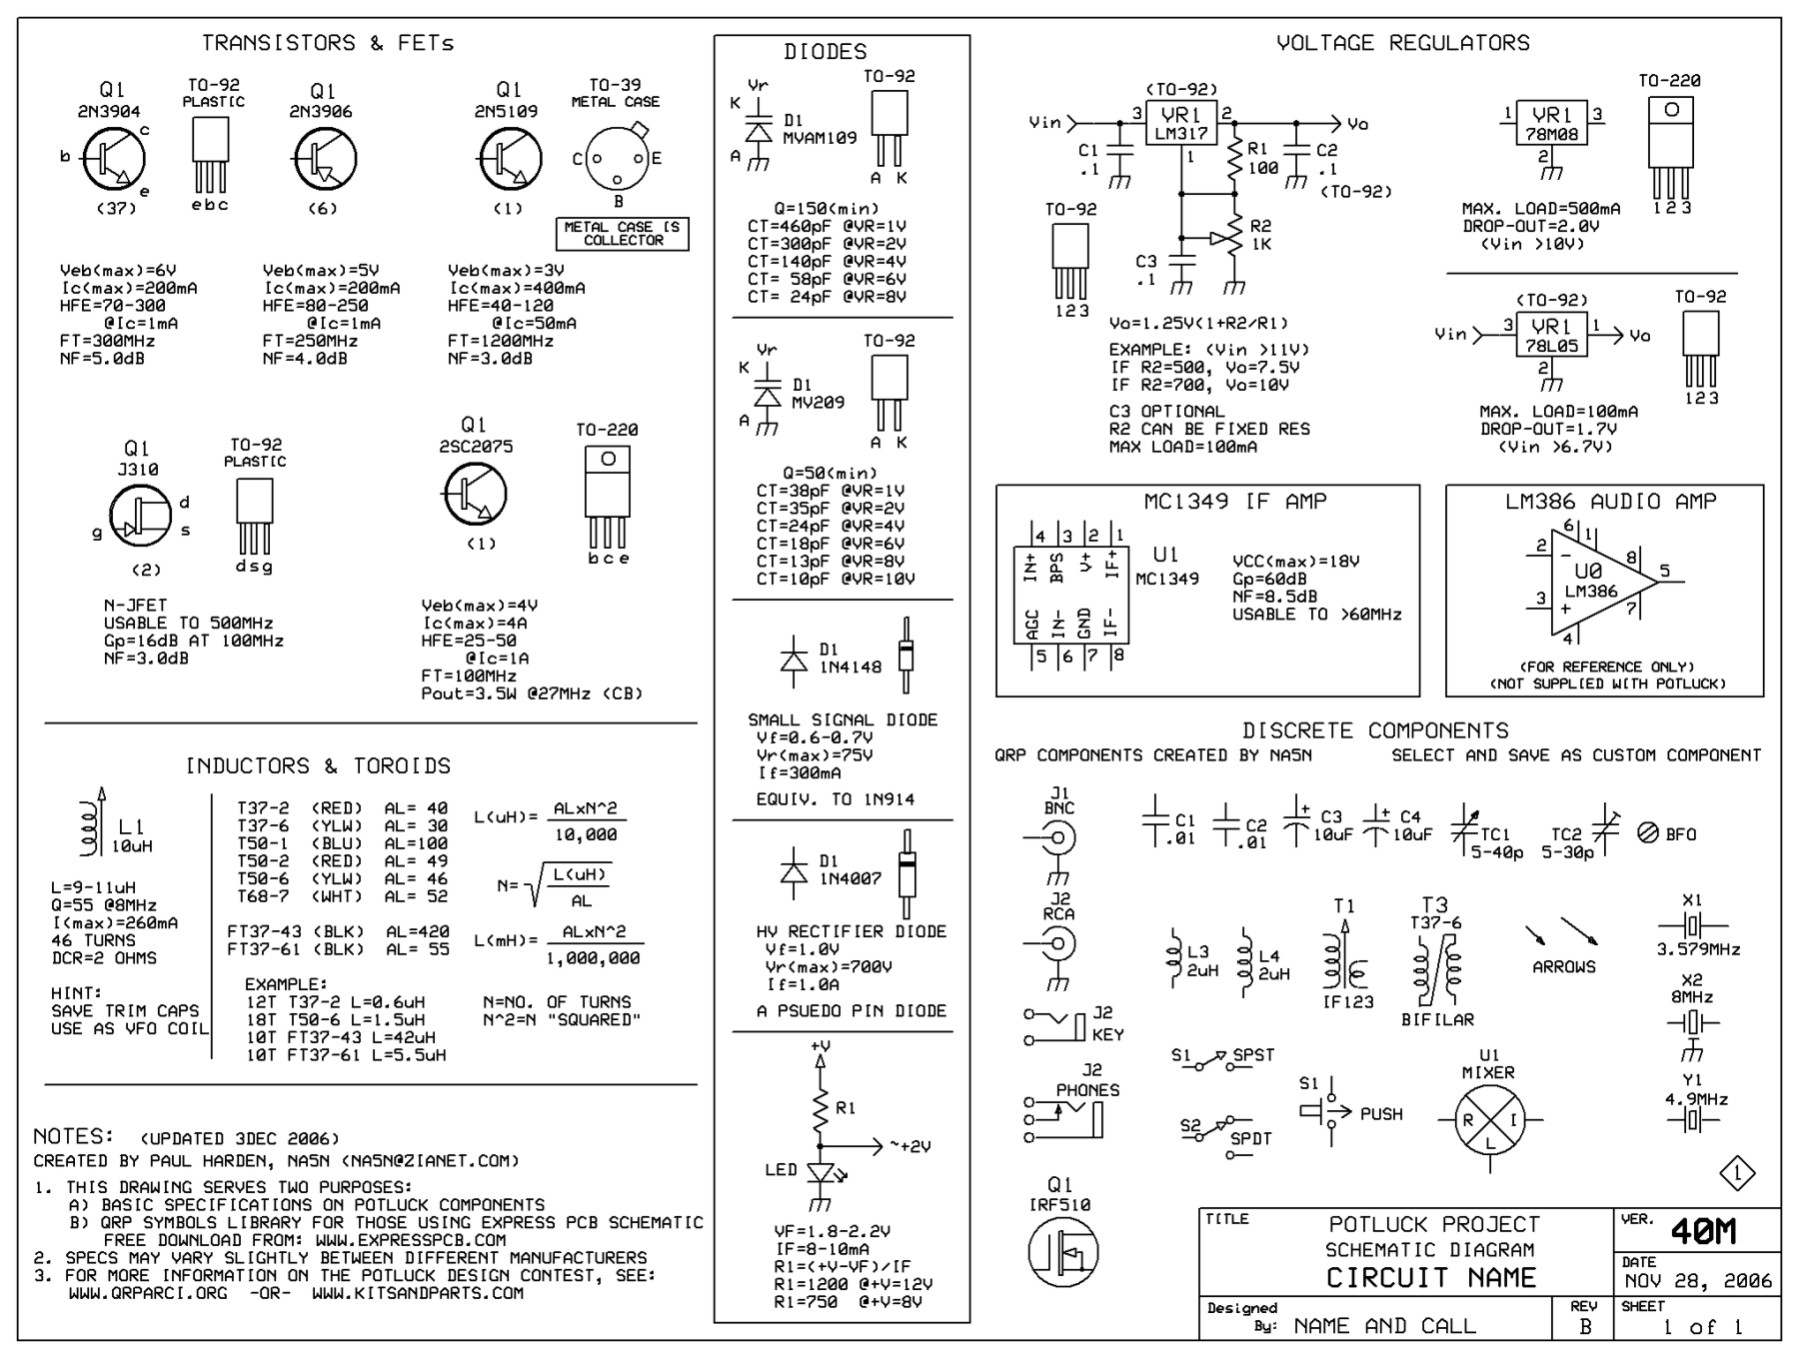 Charming Kenworth T800 Wiring Diagram Symbols Images ufc204 – Kenworth Hvac Wiring